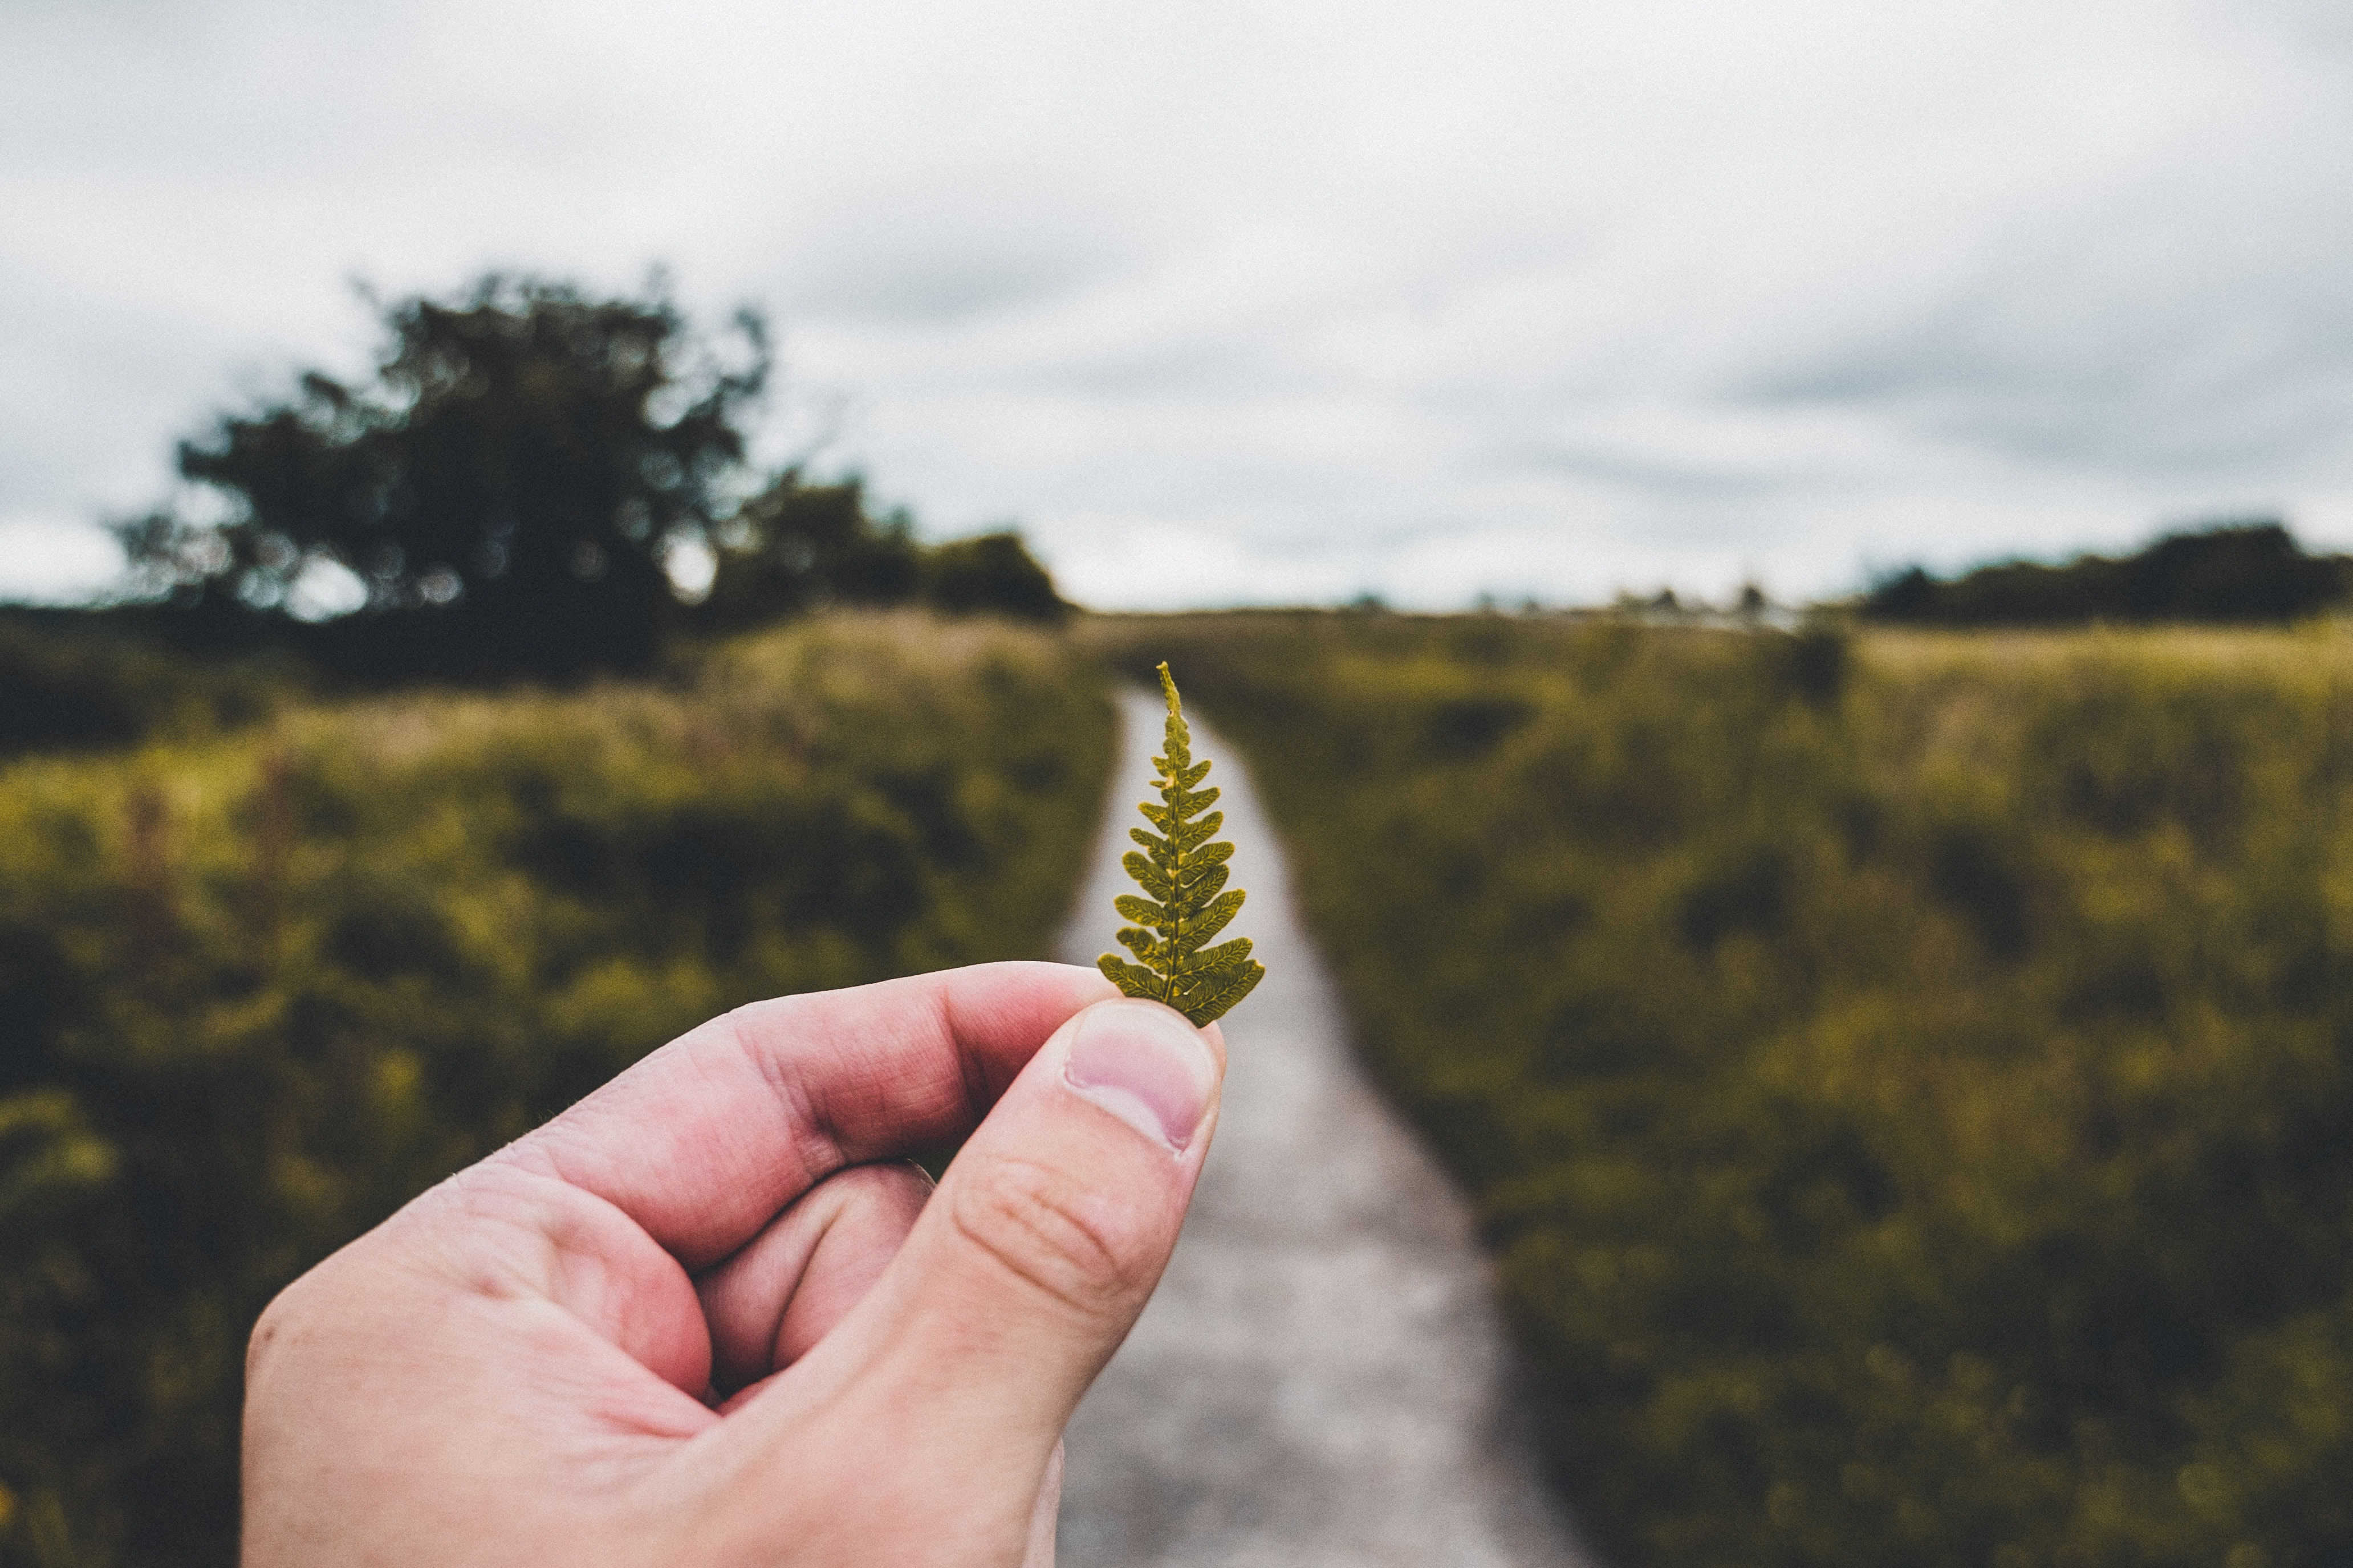 A person's hand holding up a tiny fern-like leaf against an empty path through a meadow